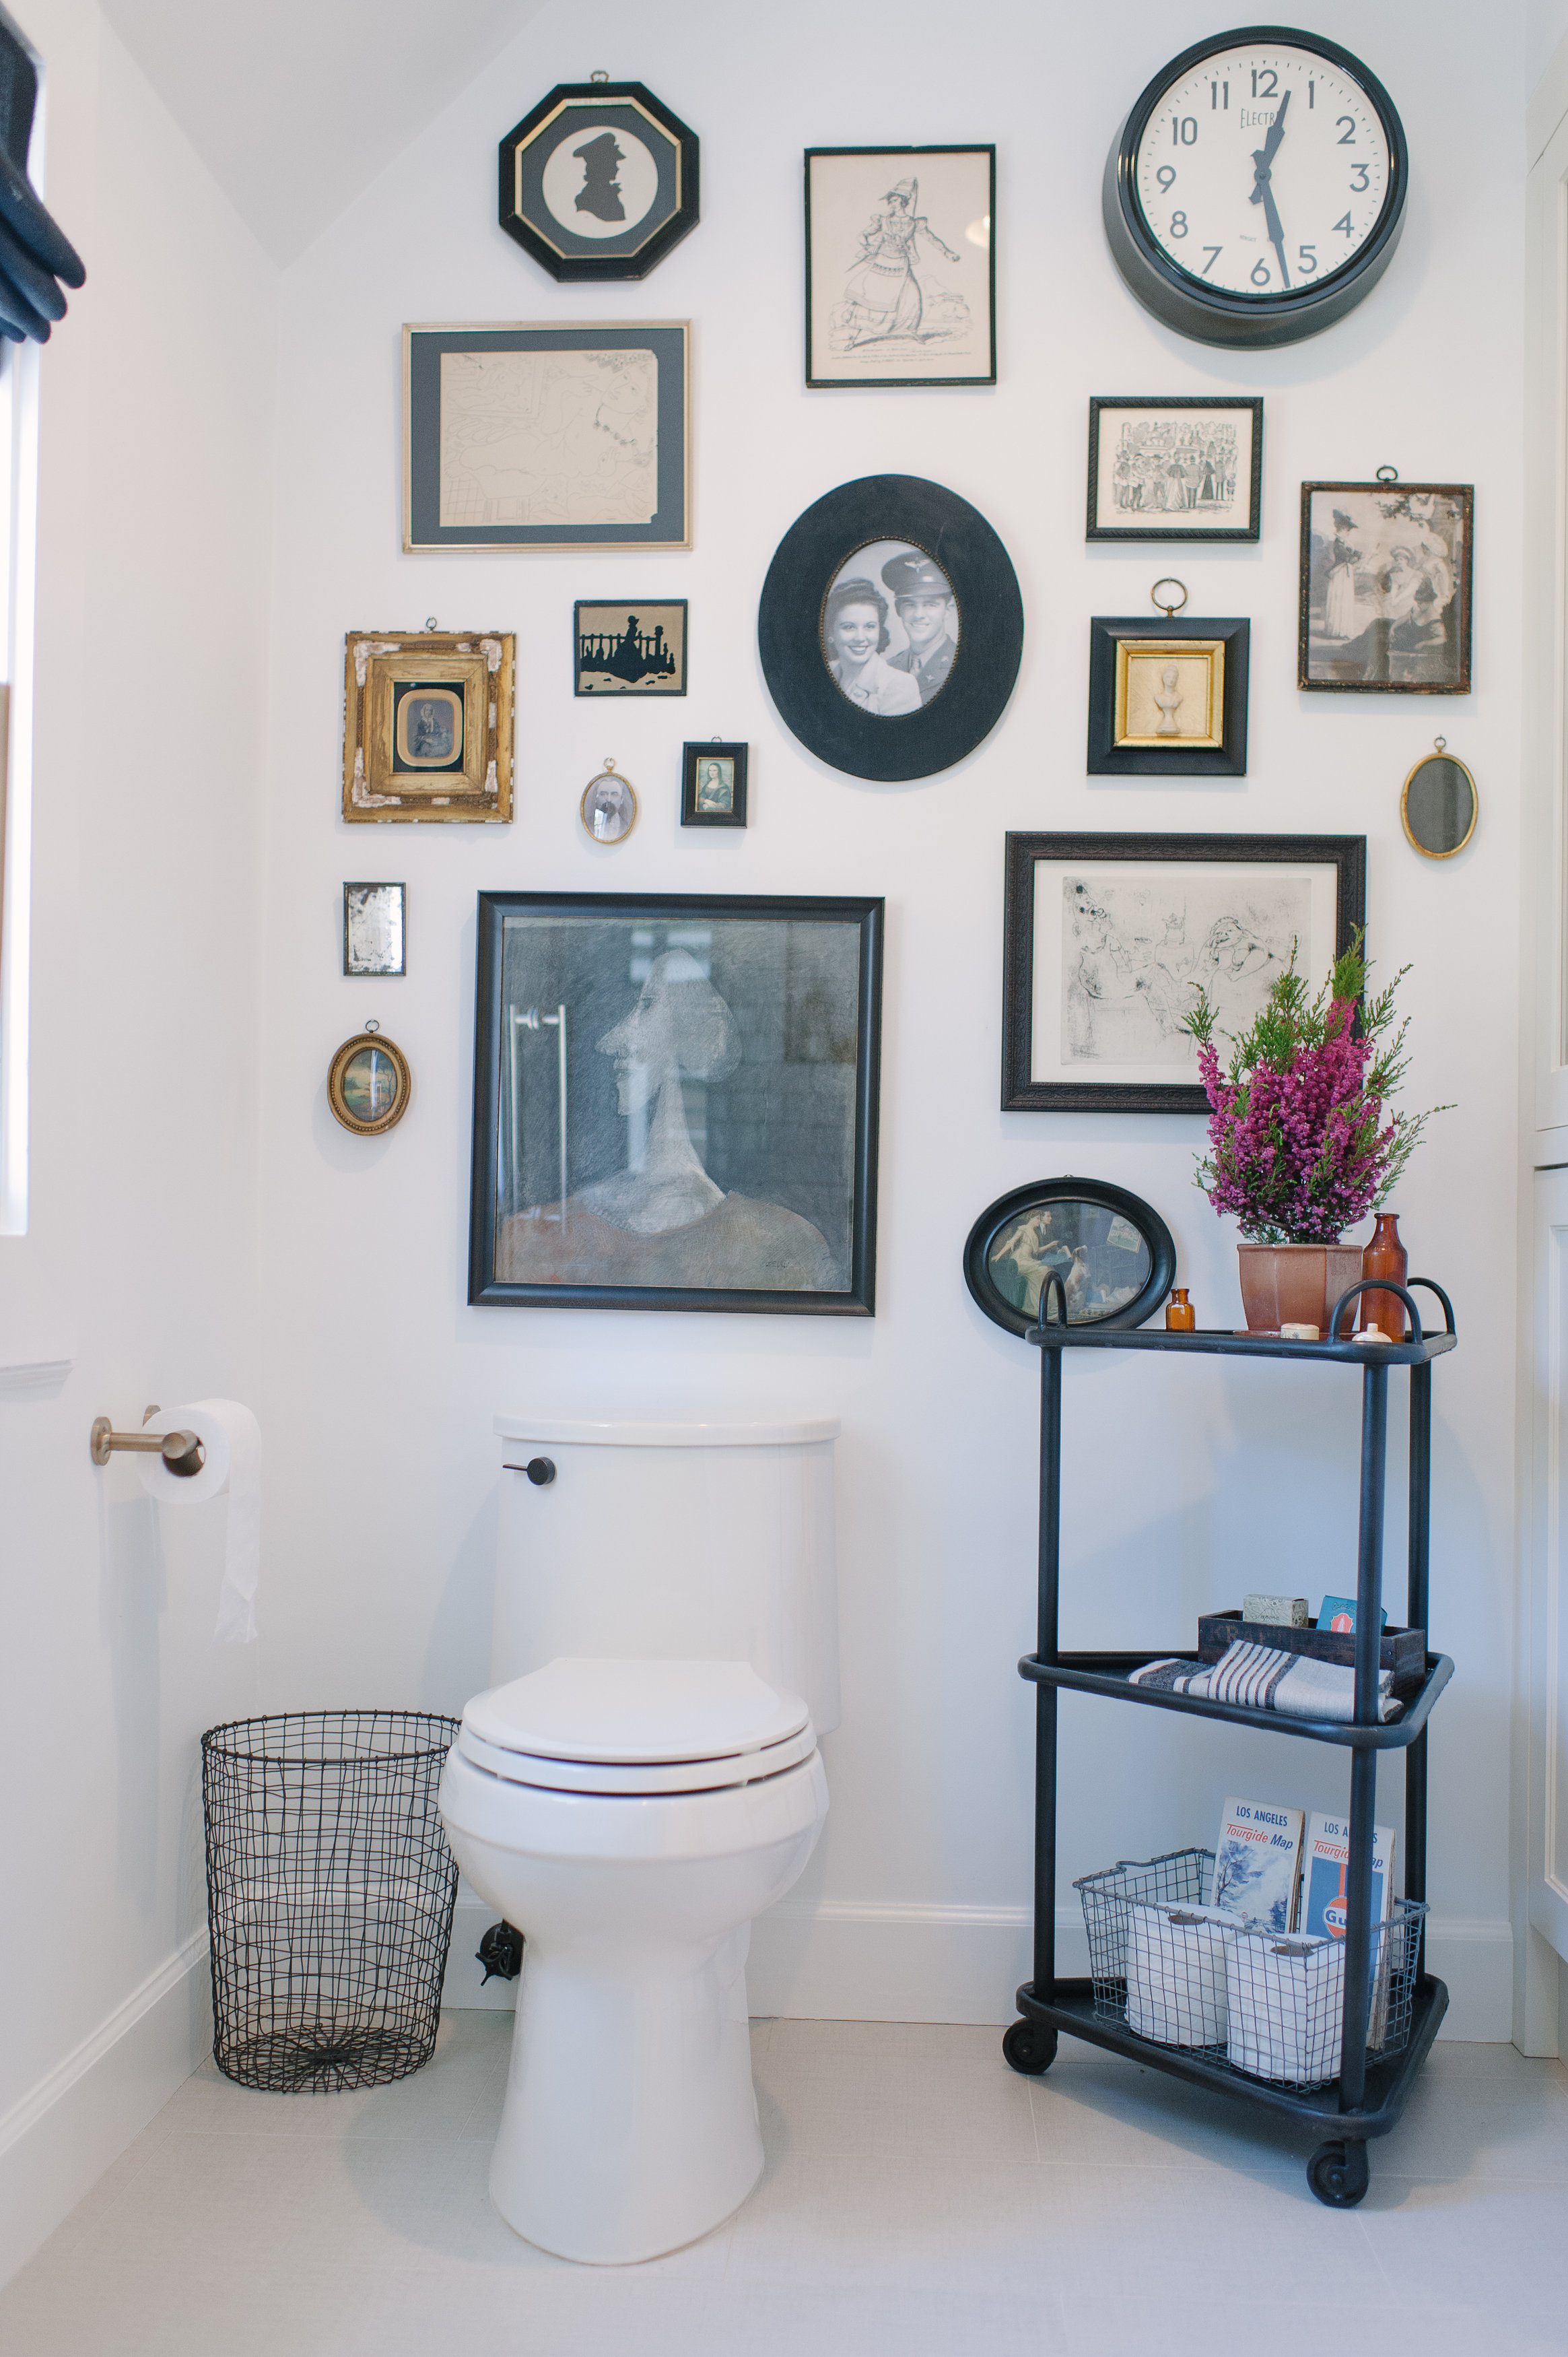 Adair toilet   Framed profiles and silhouettes include a few family photos to personalize the space.